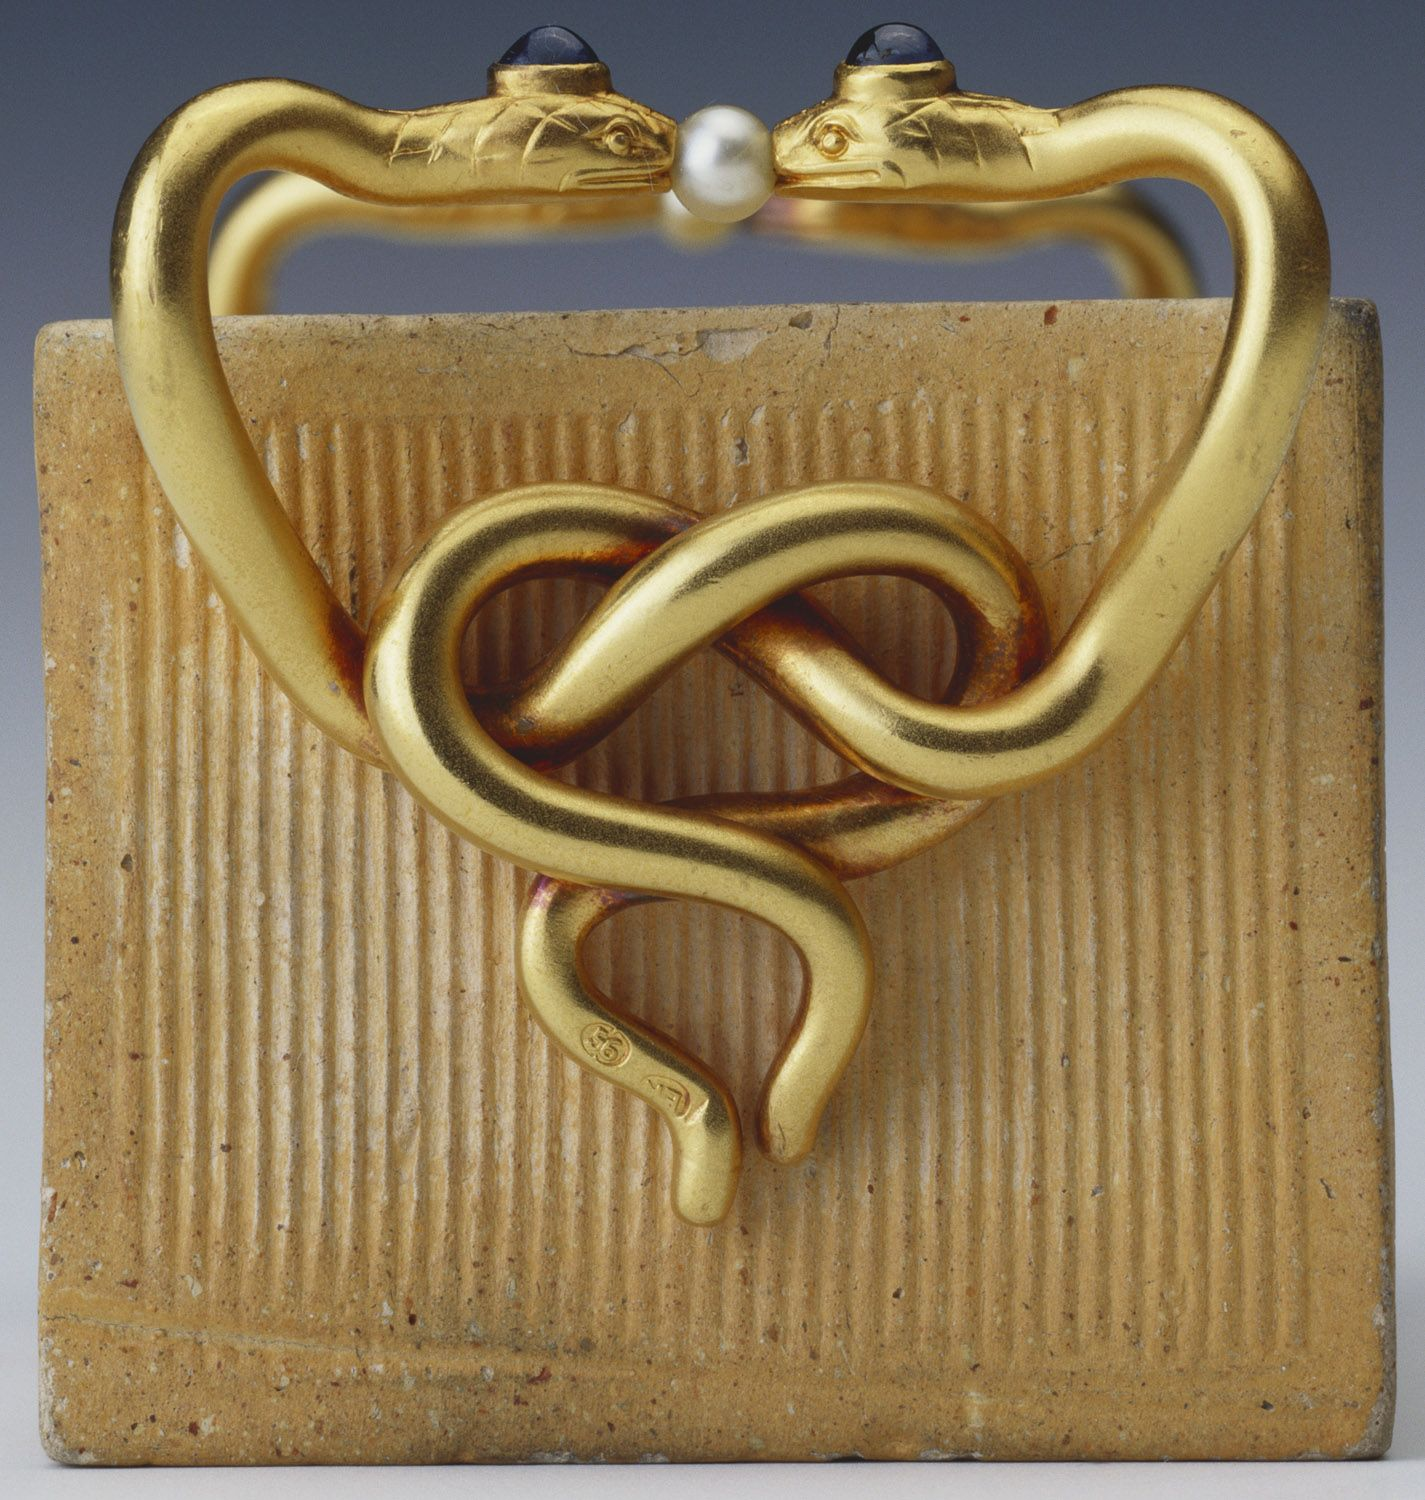 One of three match holders formed of bricks made by the Gusareva factory in Moscow and now in the Royal Collection, two of which are by Fabergé. This example by Fabergé is mounted with gold handles in the form of pairs of entwined serpents decorated with sapphires and pearls; workmaster Erik Kollin, before 1896. Acquired by King Edward VII, date unknown.